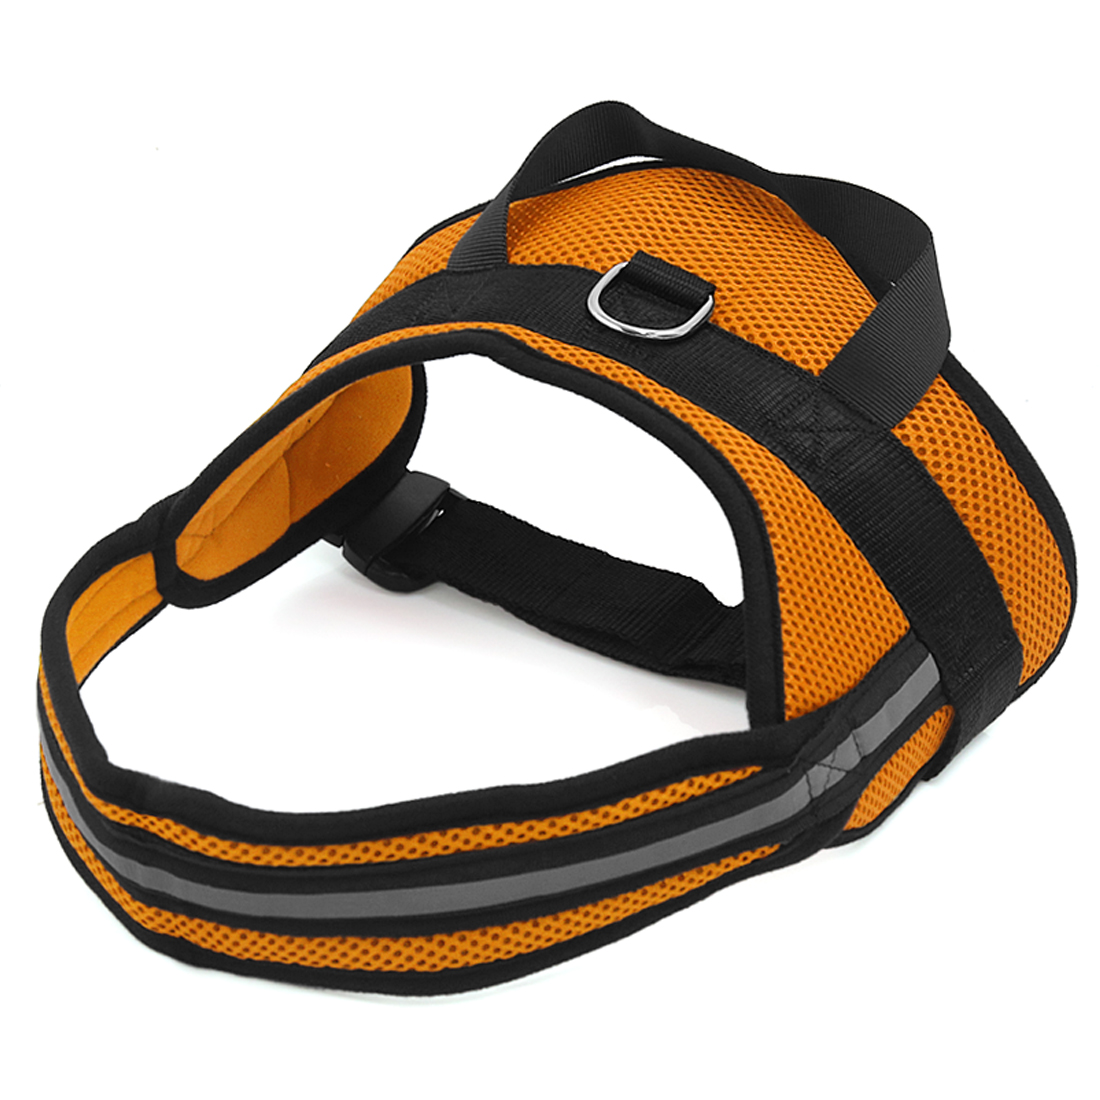 Big Dog Soft Mesh Reflective No Pull Harness Adjustable Large Pet Walk Vest Safe Control Collar Orange S